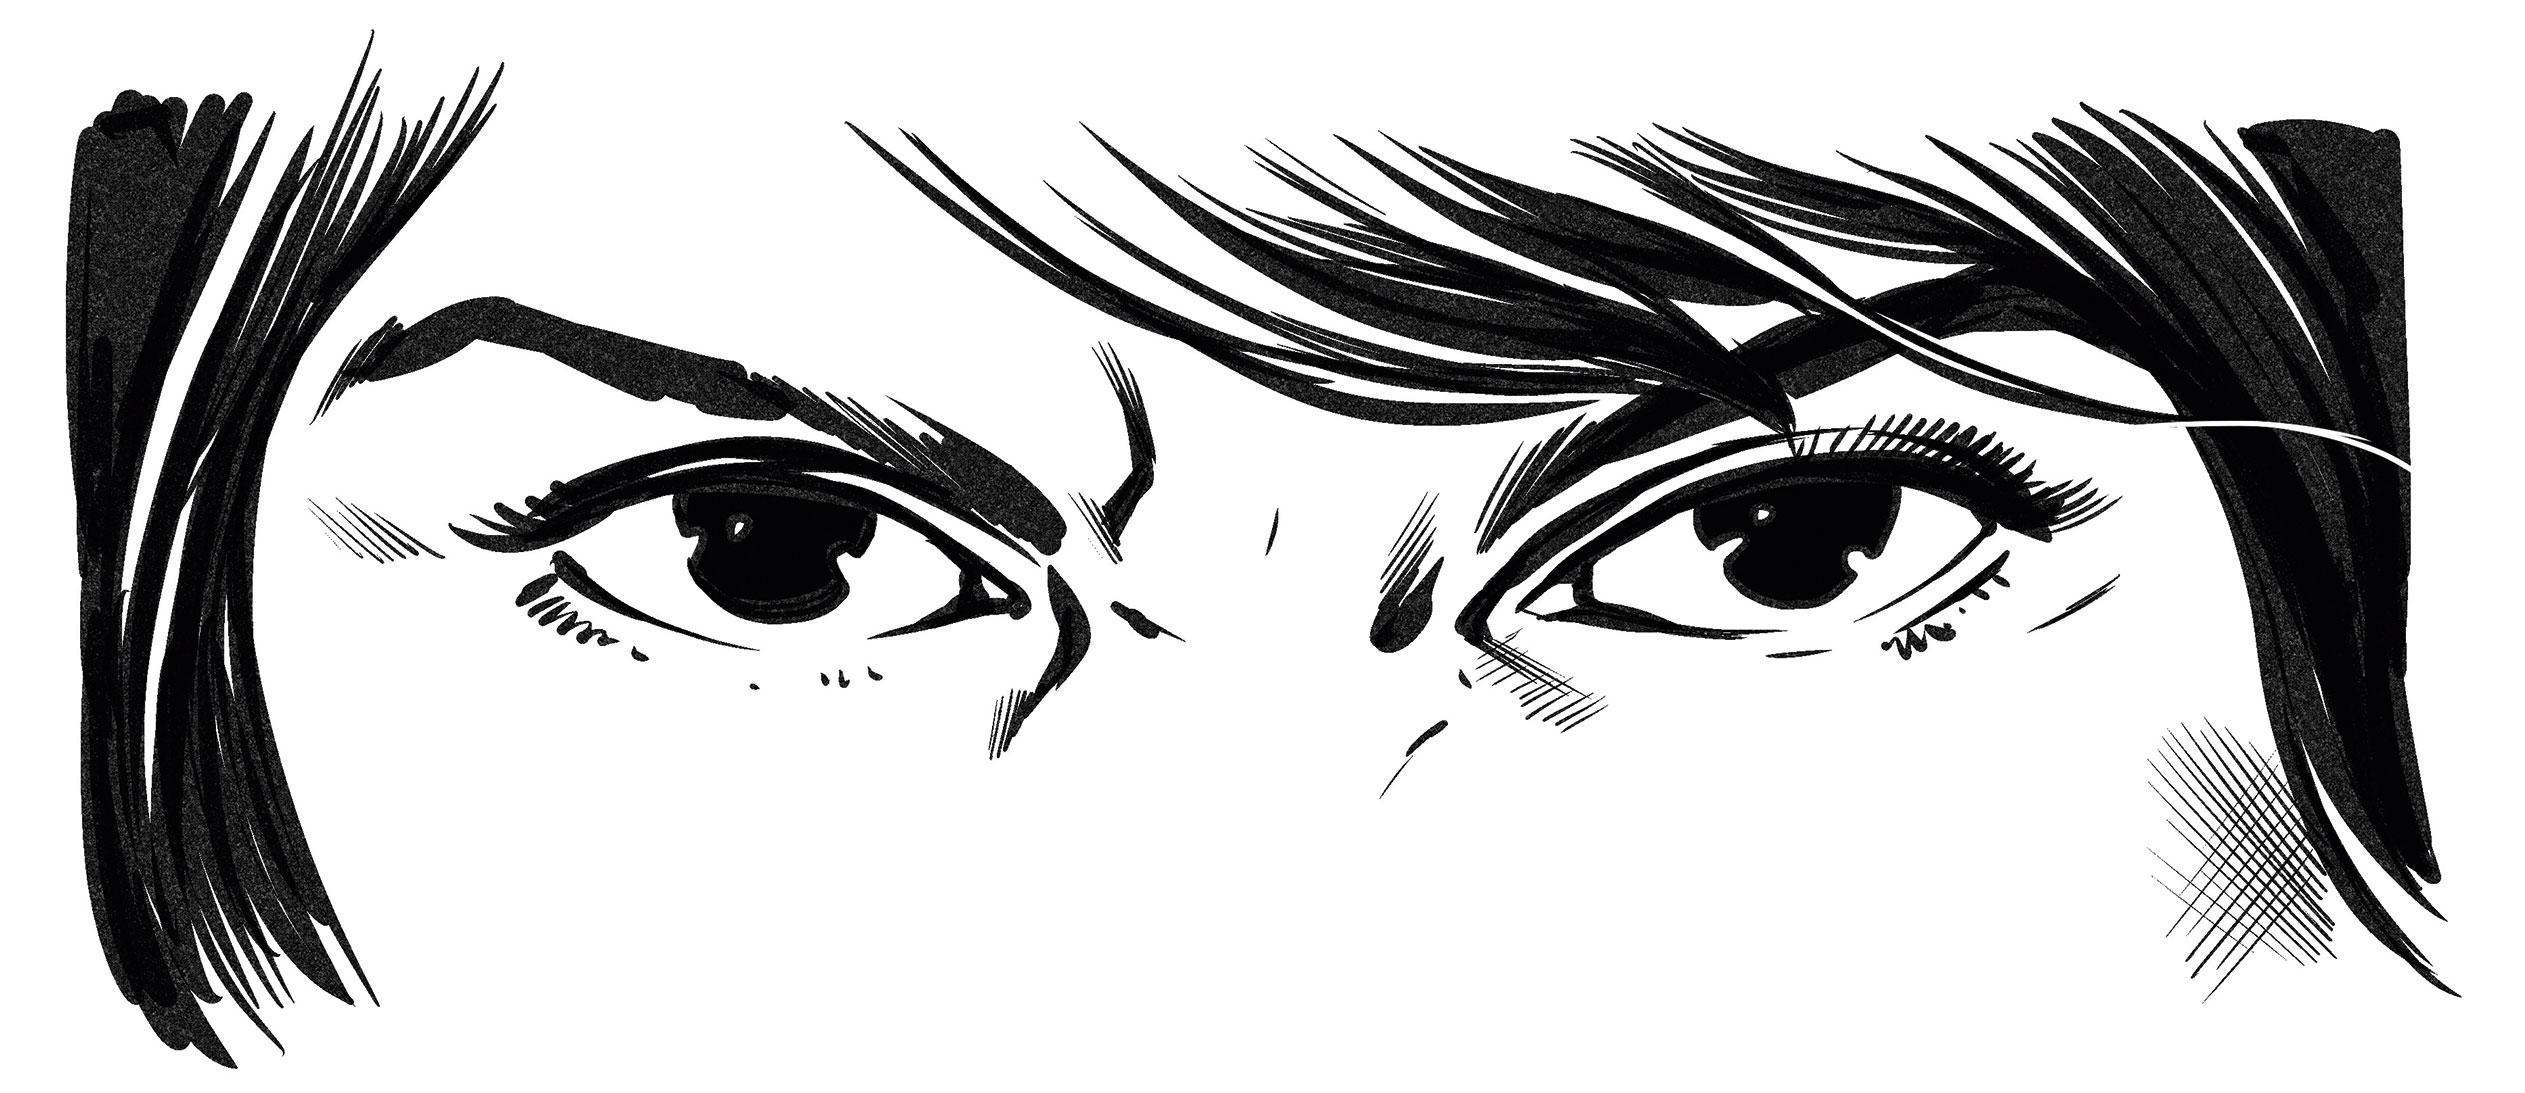 Illustration of a pair of eyes